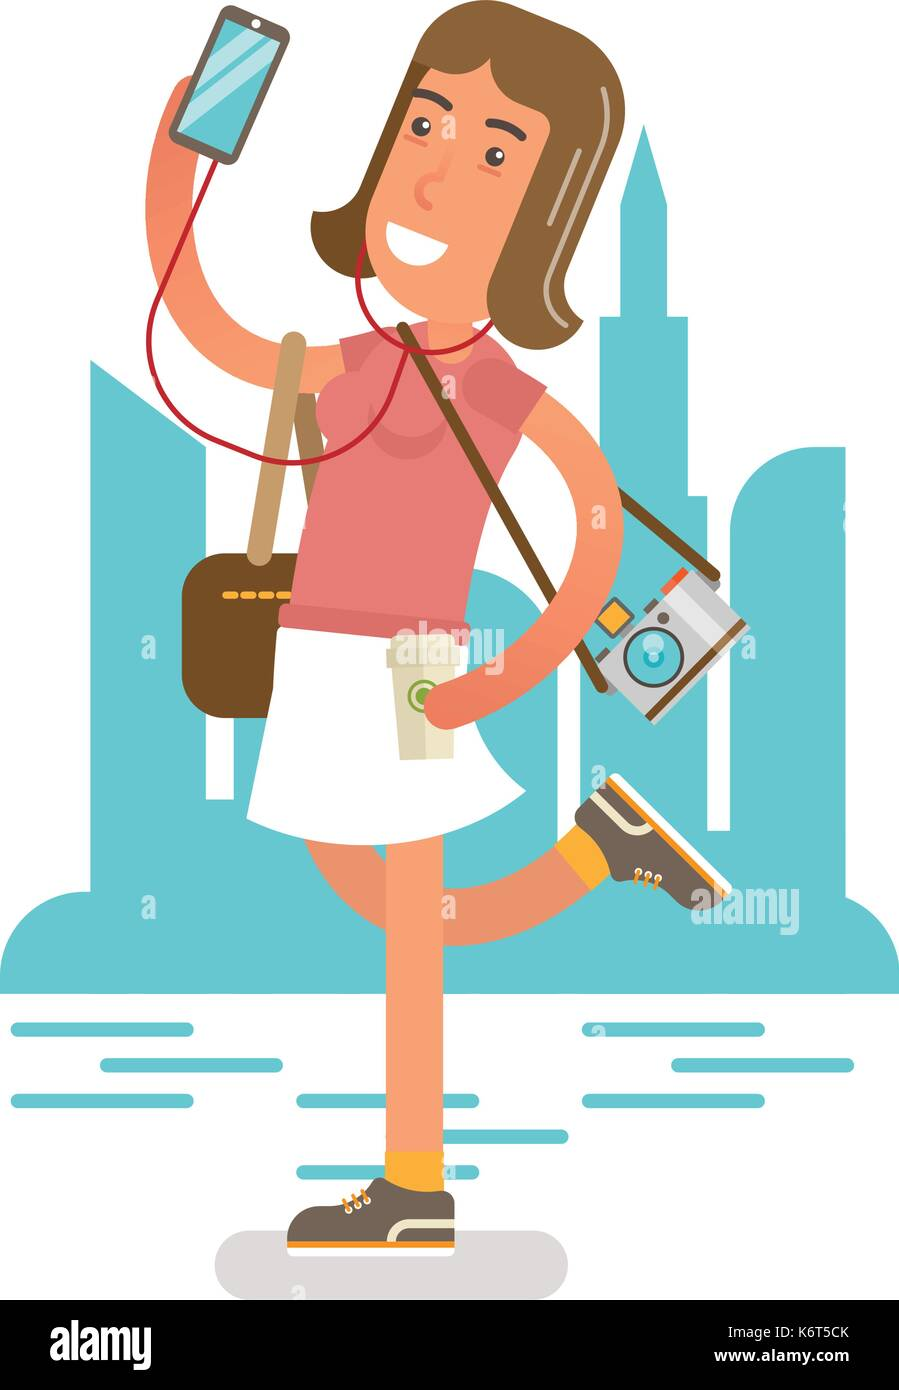 Generation Y, Millennial girl enjoying being outdoor with phone, earphones and photo camera. - Stock Vector